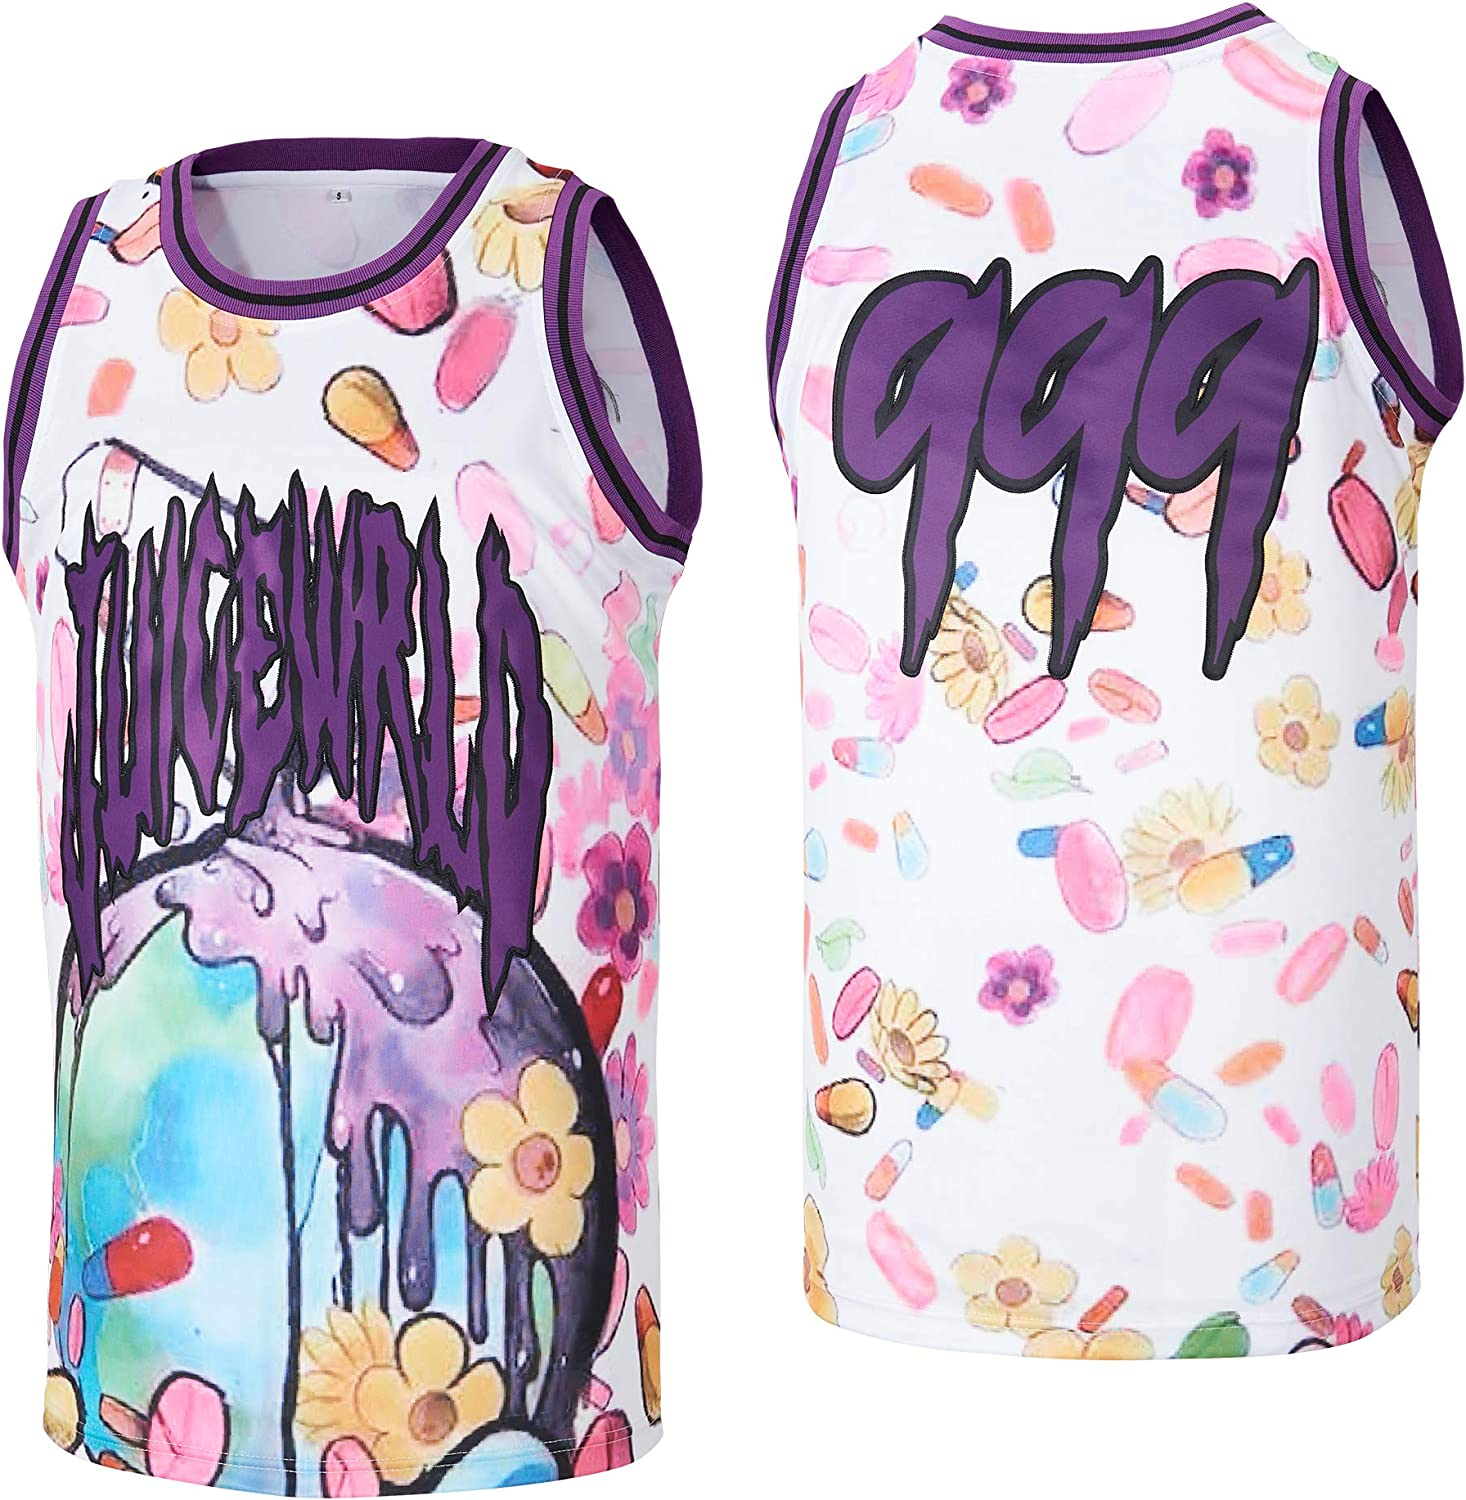 Men's Juice 999 Globe Hip Hop Basketball Stitched Online limited product Rap Ranking TOP17 Jersey Whi